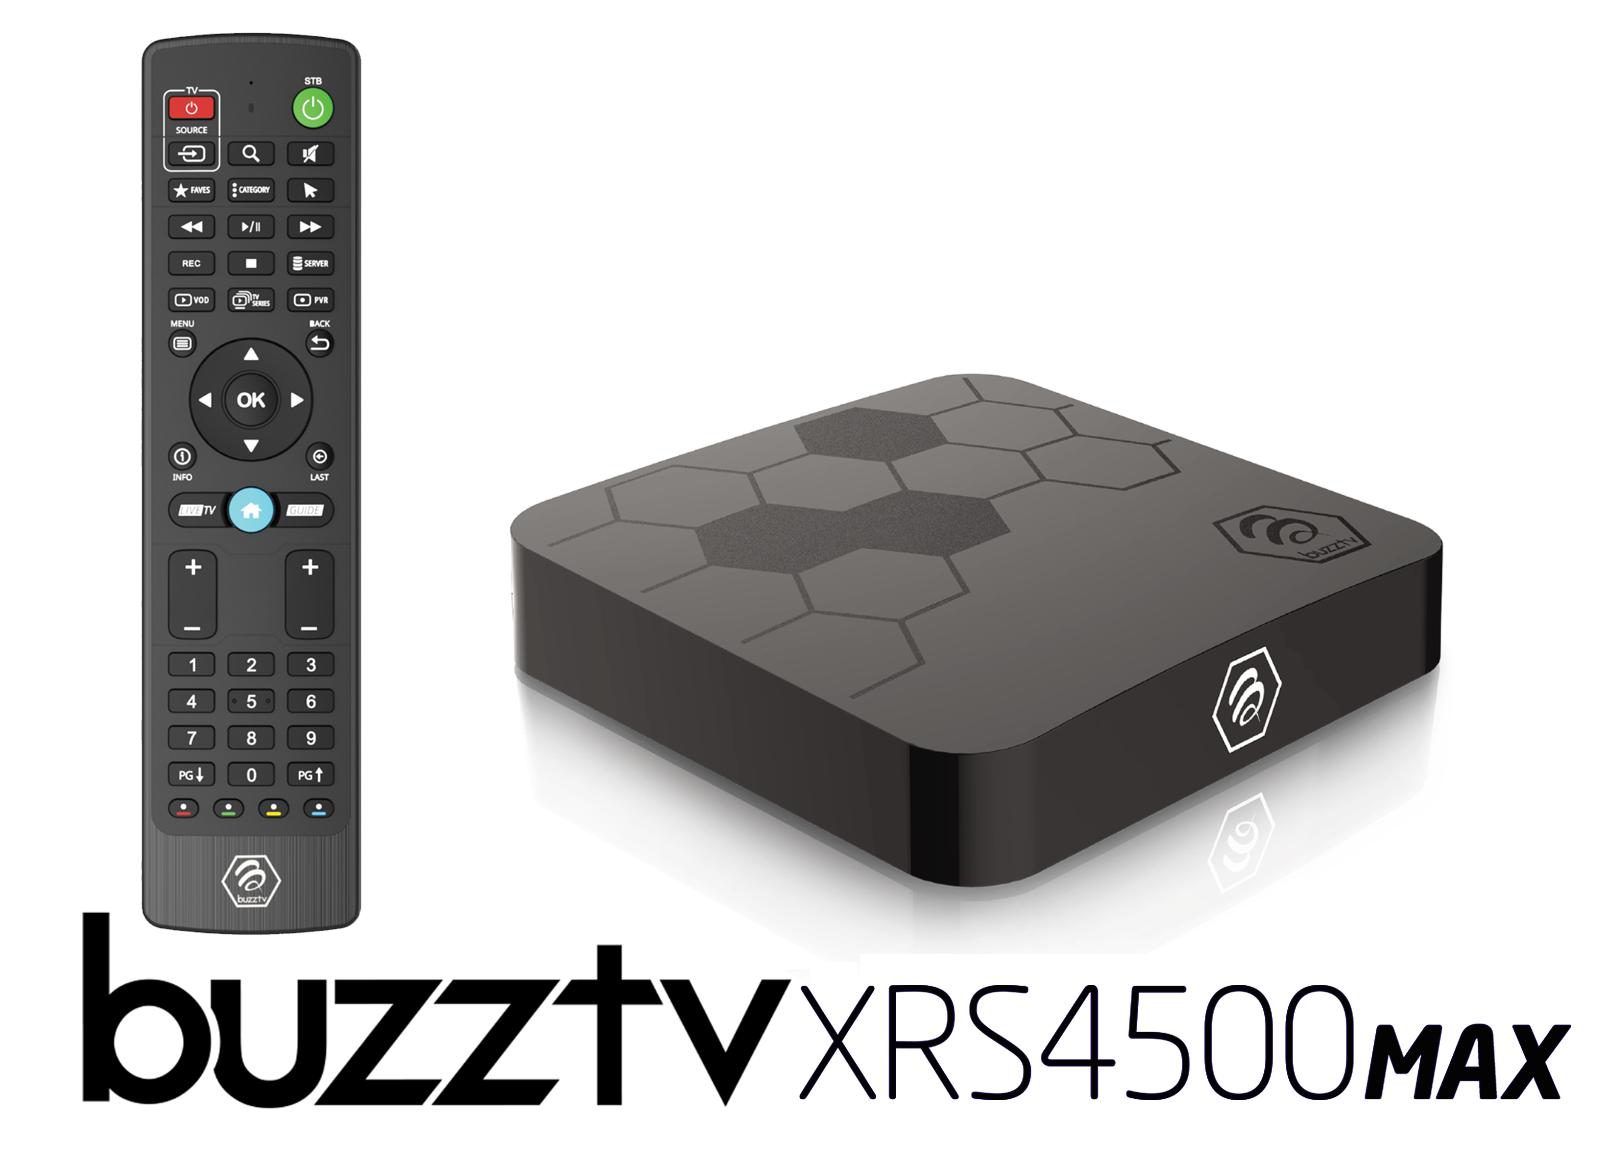 BuzzTV XRS 4500 MAX Android IPTV OTT set-top HD 4K TV Box